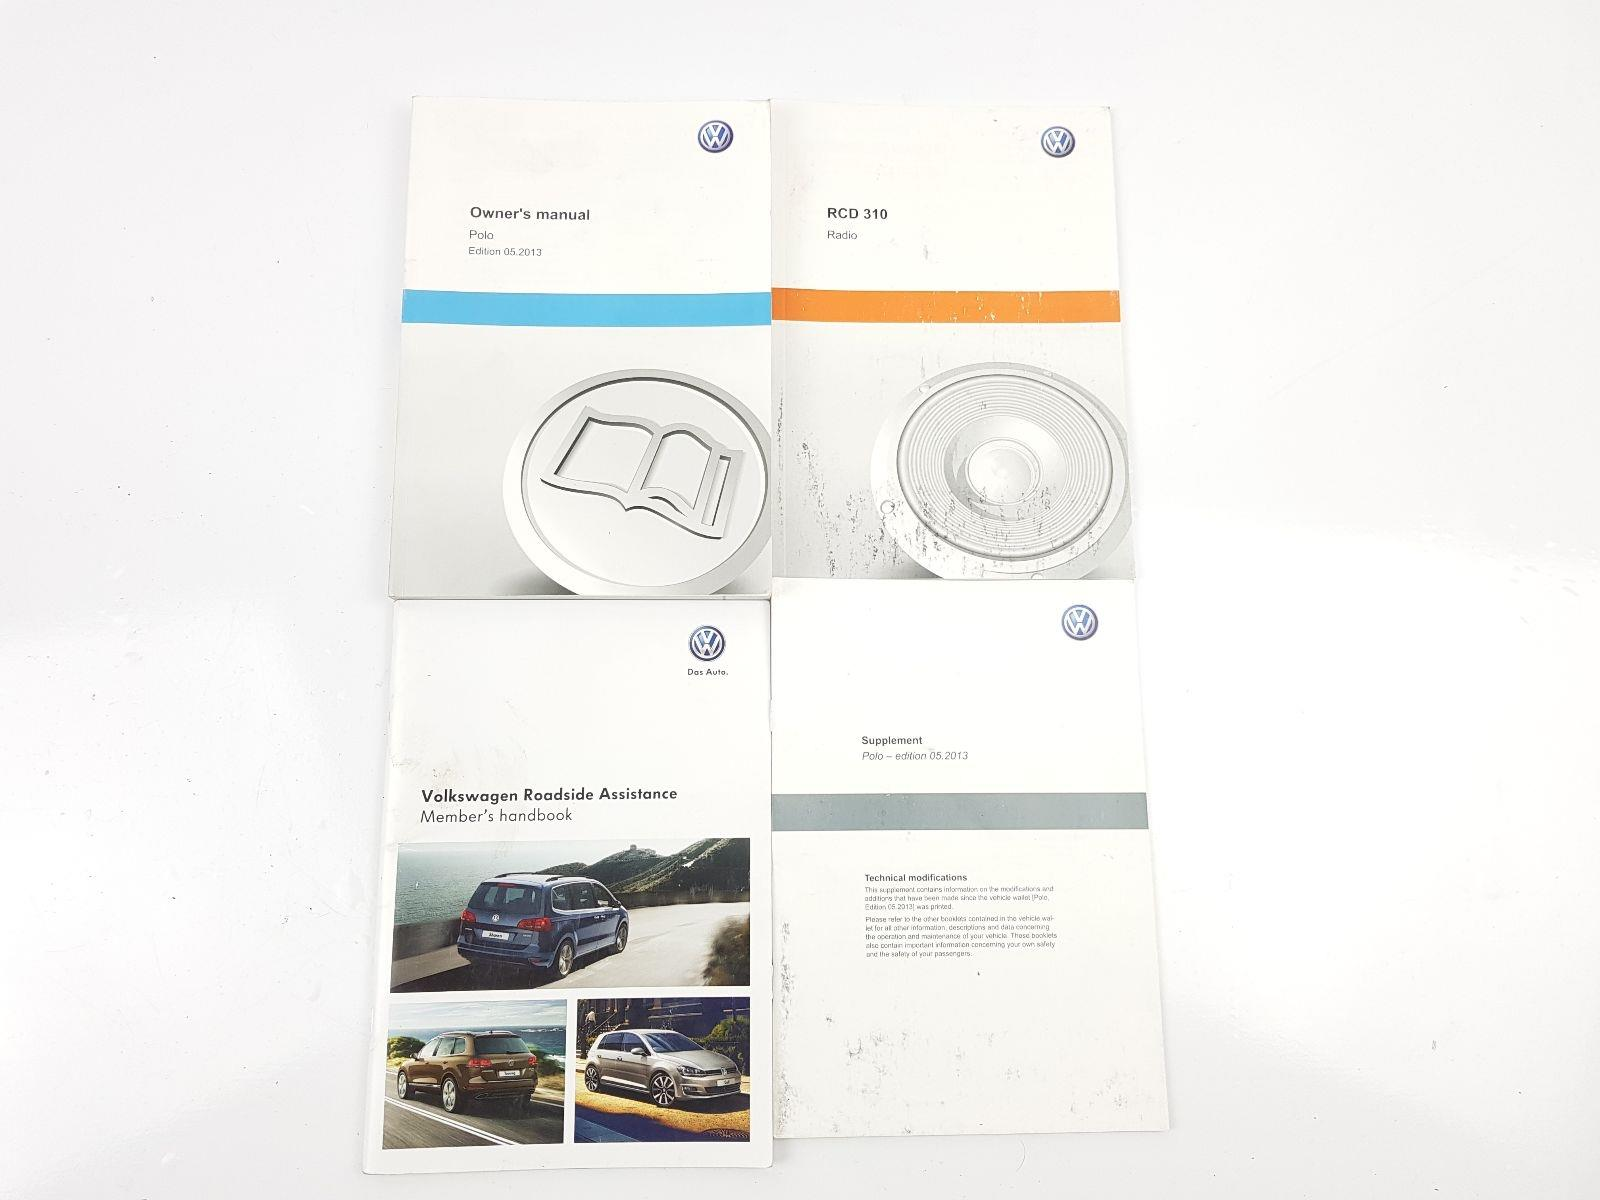 Volkswagen Polo 2010 To 2014 Book Pack Petrol Manual For Sale Rcd 310 Wiring Diagram Mk5 6r Owners